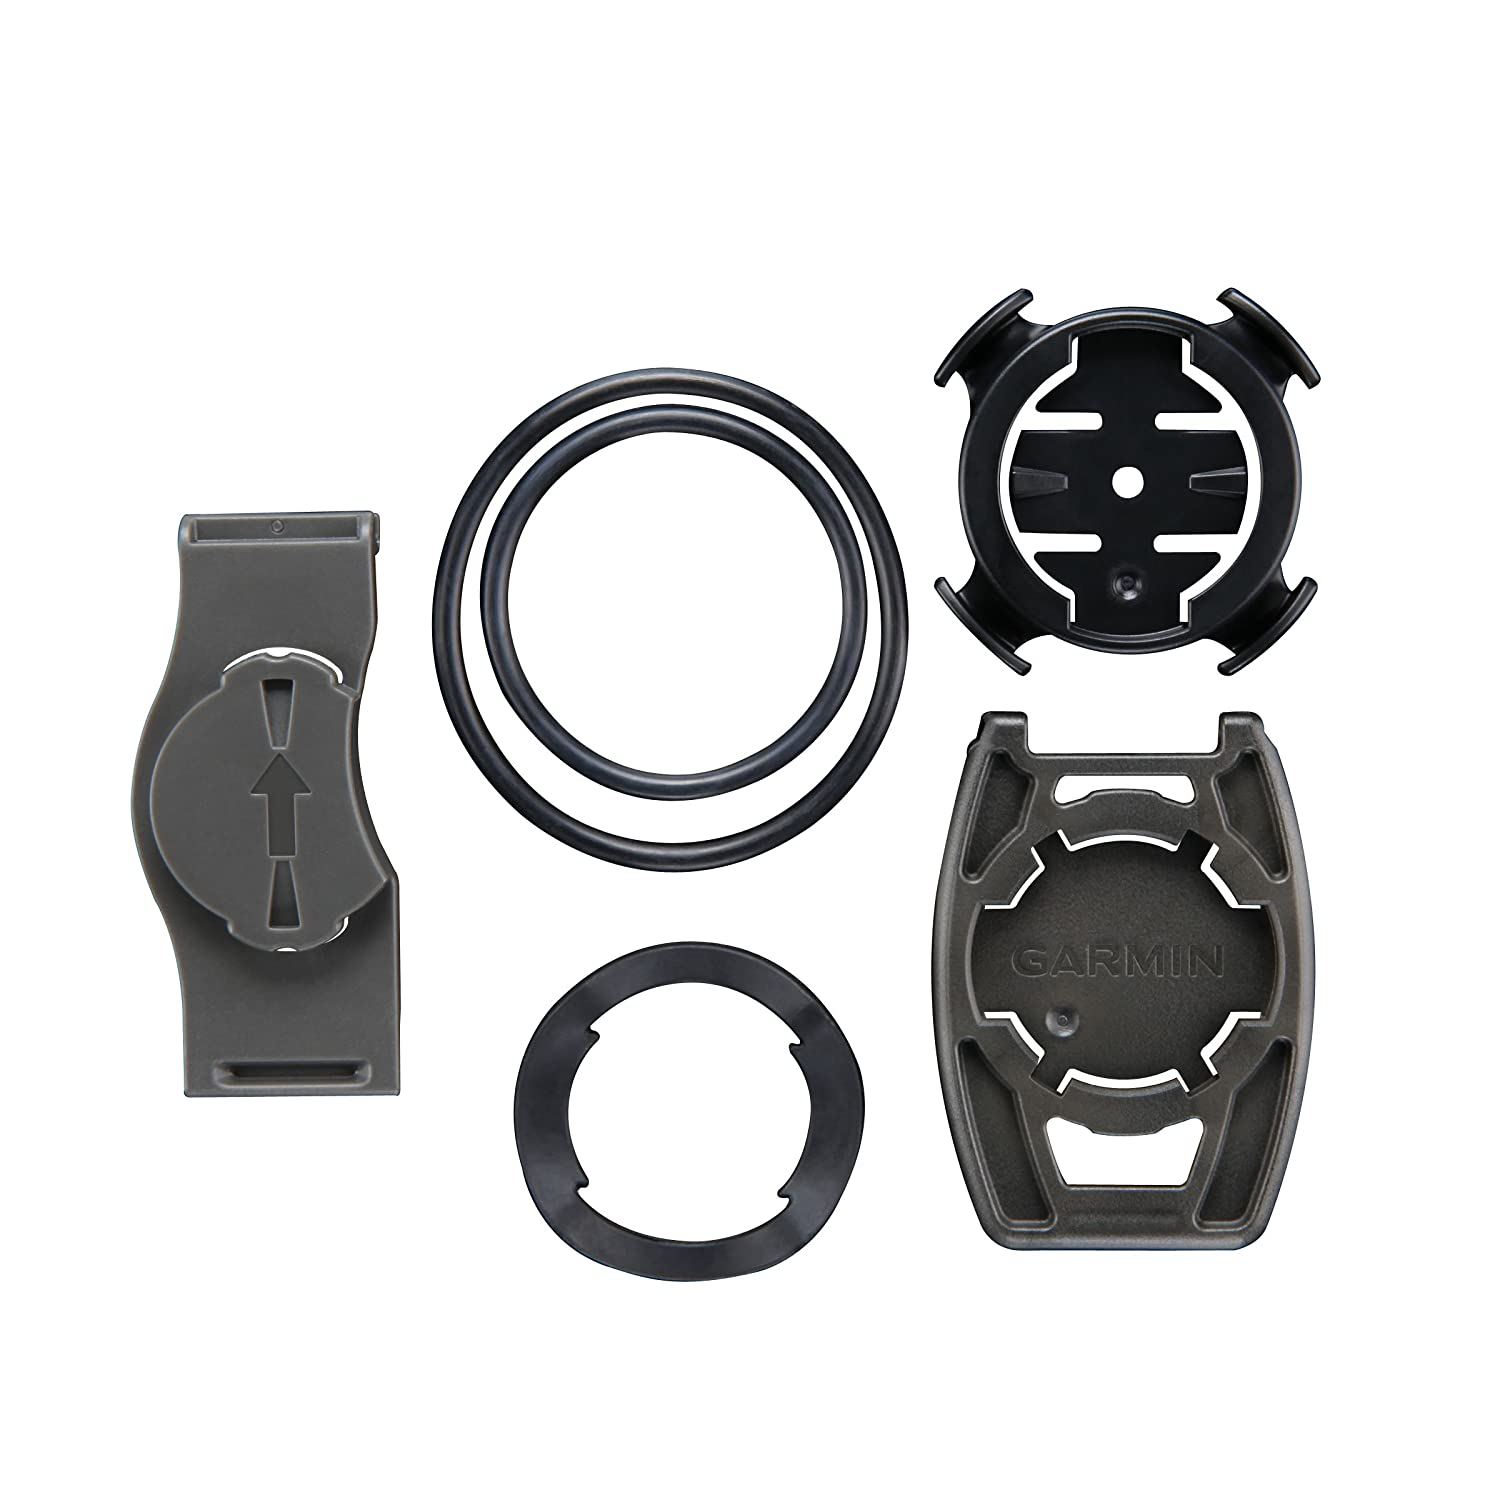 Garmin 010 11215 02 Quick Release Mounting Image 1